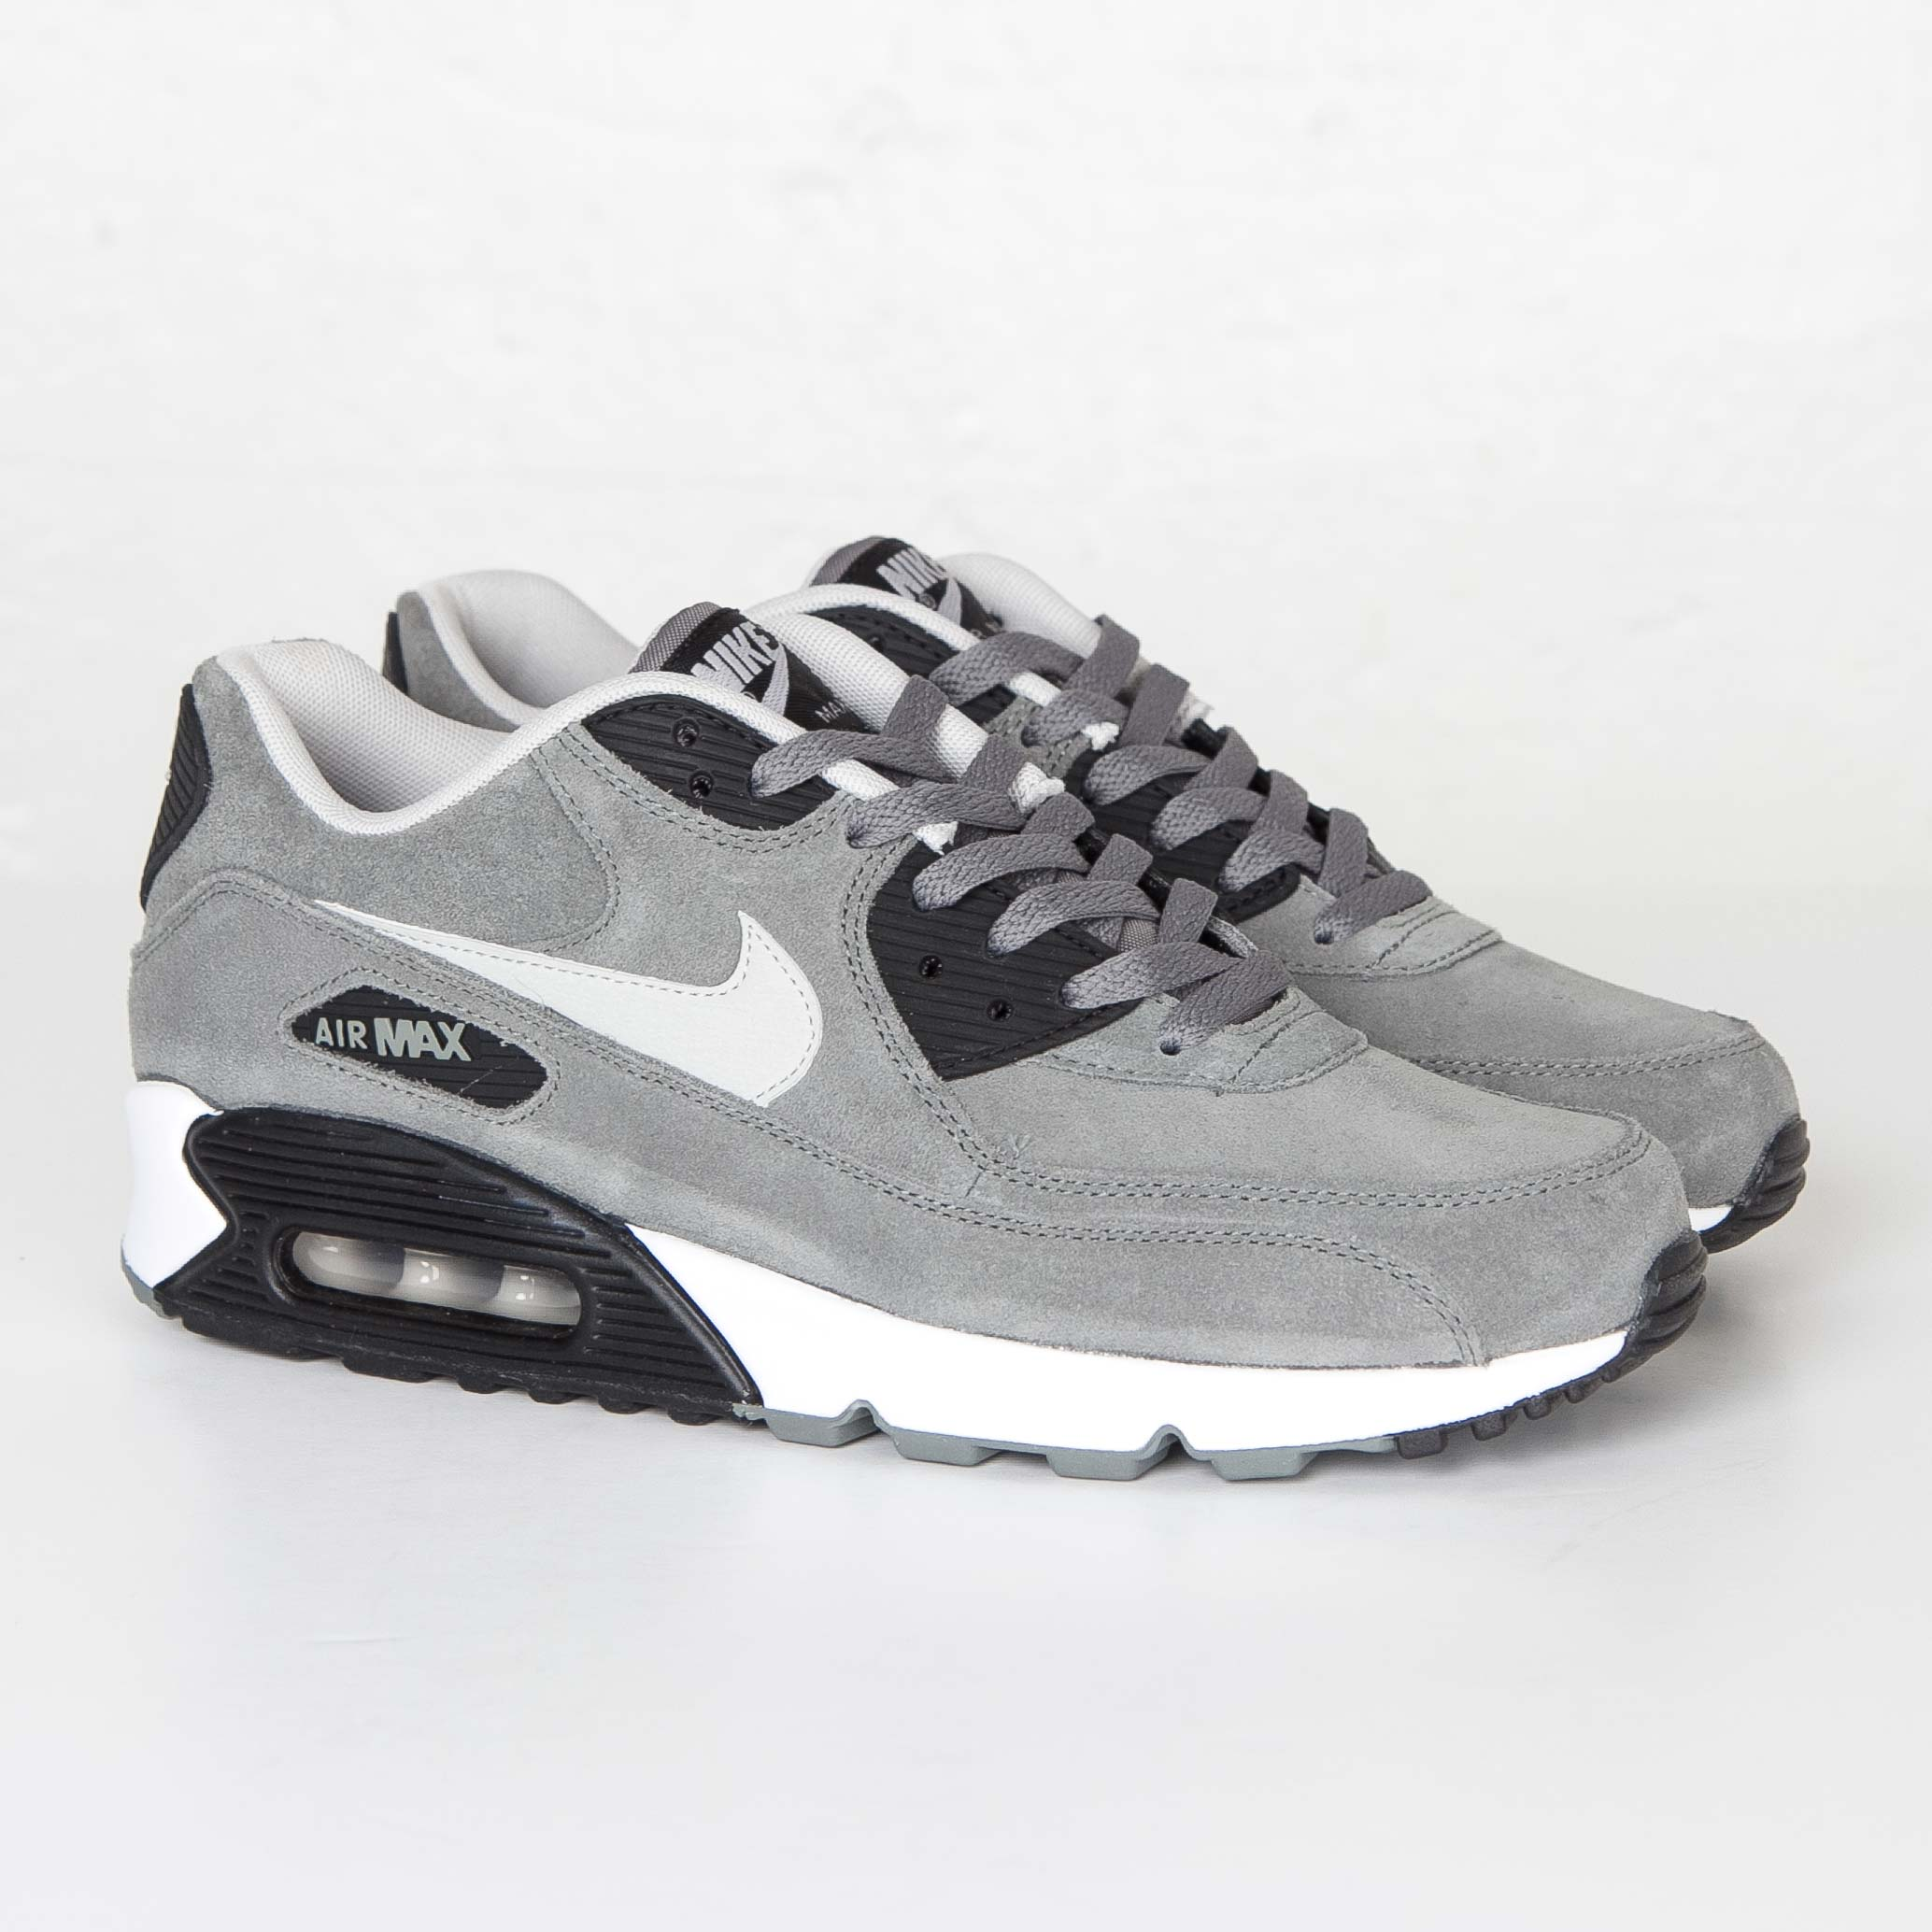 half off 88b7a 8a982 Nike Air Max 90 LTR - 652980-013 - Sneakersnstuff | sneakers ...